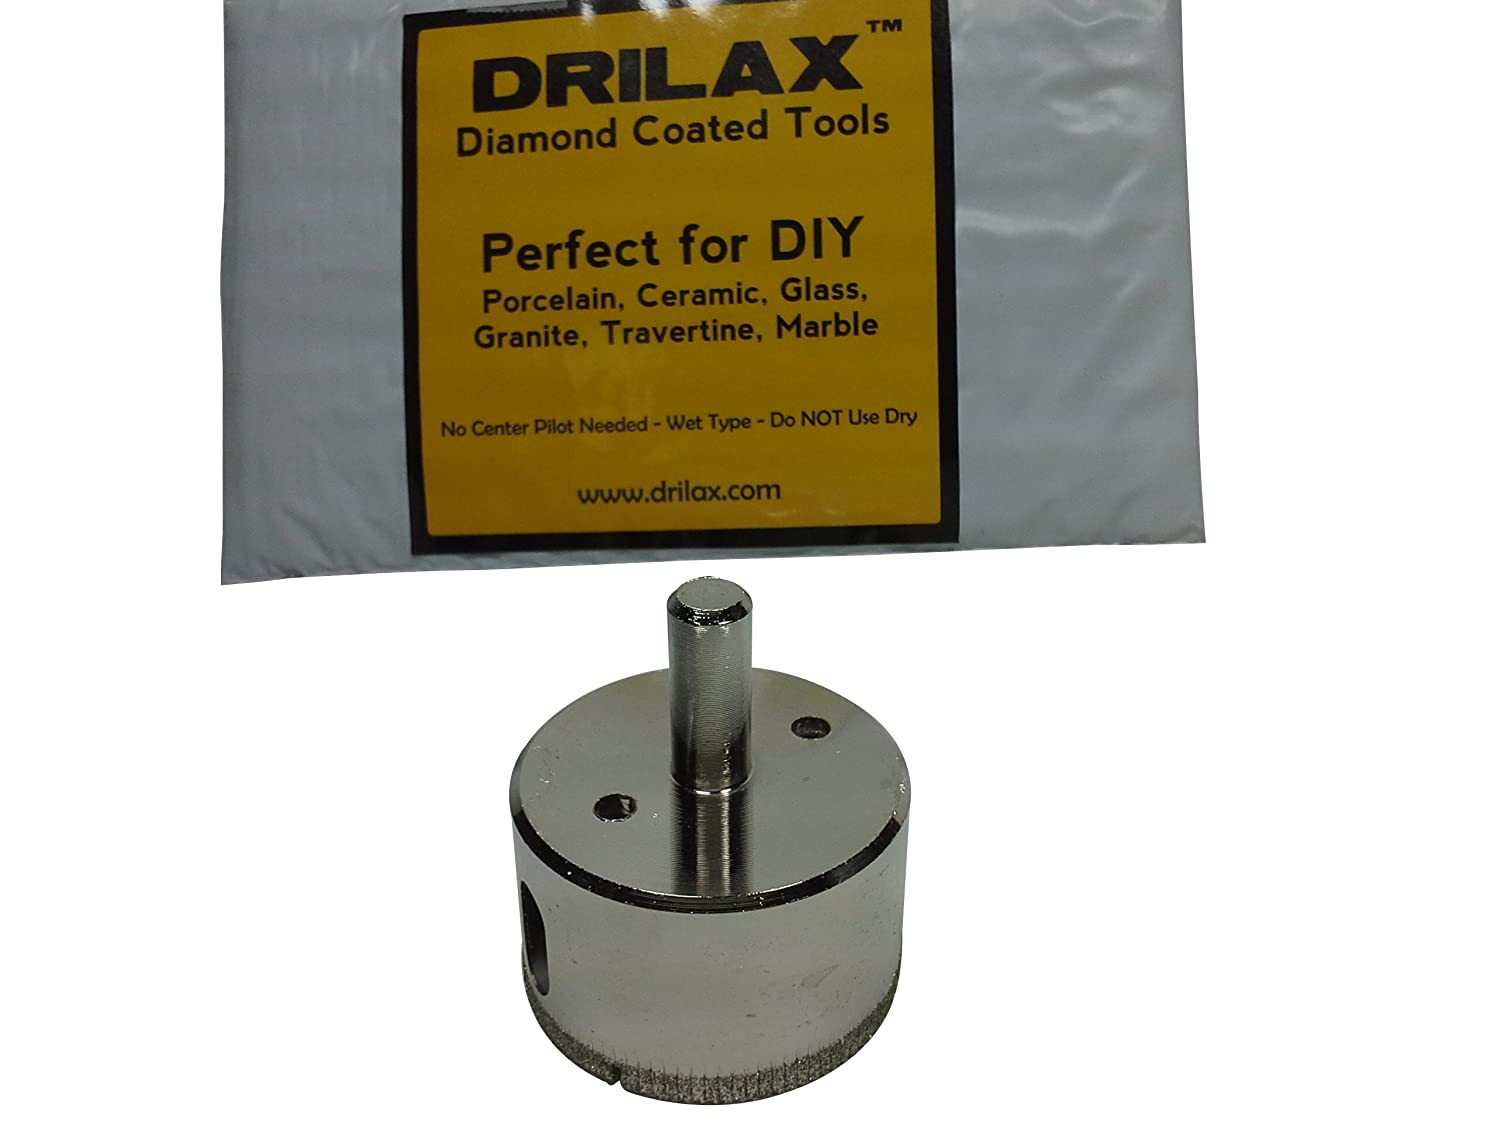 Drilax 2 Inch Diamond Hole Saw Drill Bit Tiles, Glass, Fish Tanks, Marble, Granite Countertop, Ceramic, Porcelain, Coated Core Bits Holesaw DIY Kitchen, Bathroom, Shower, Faucet Installation Size 2""